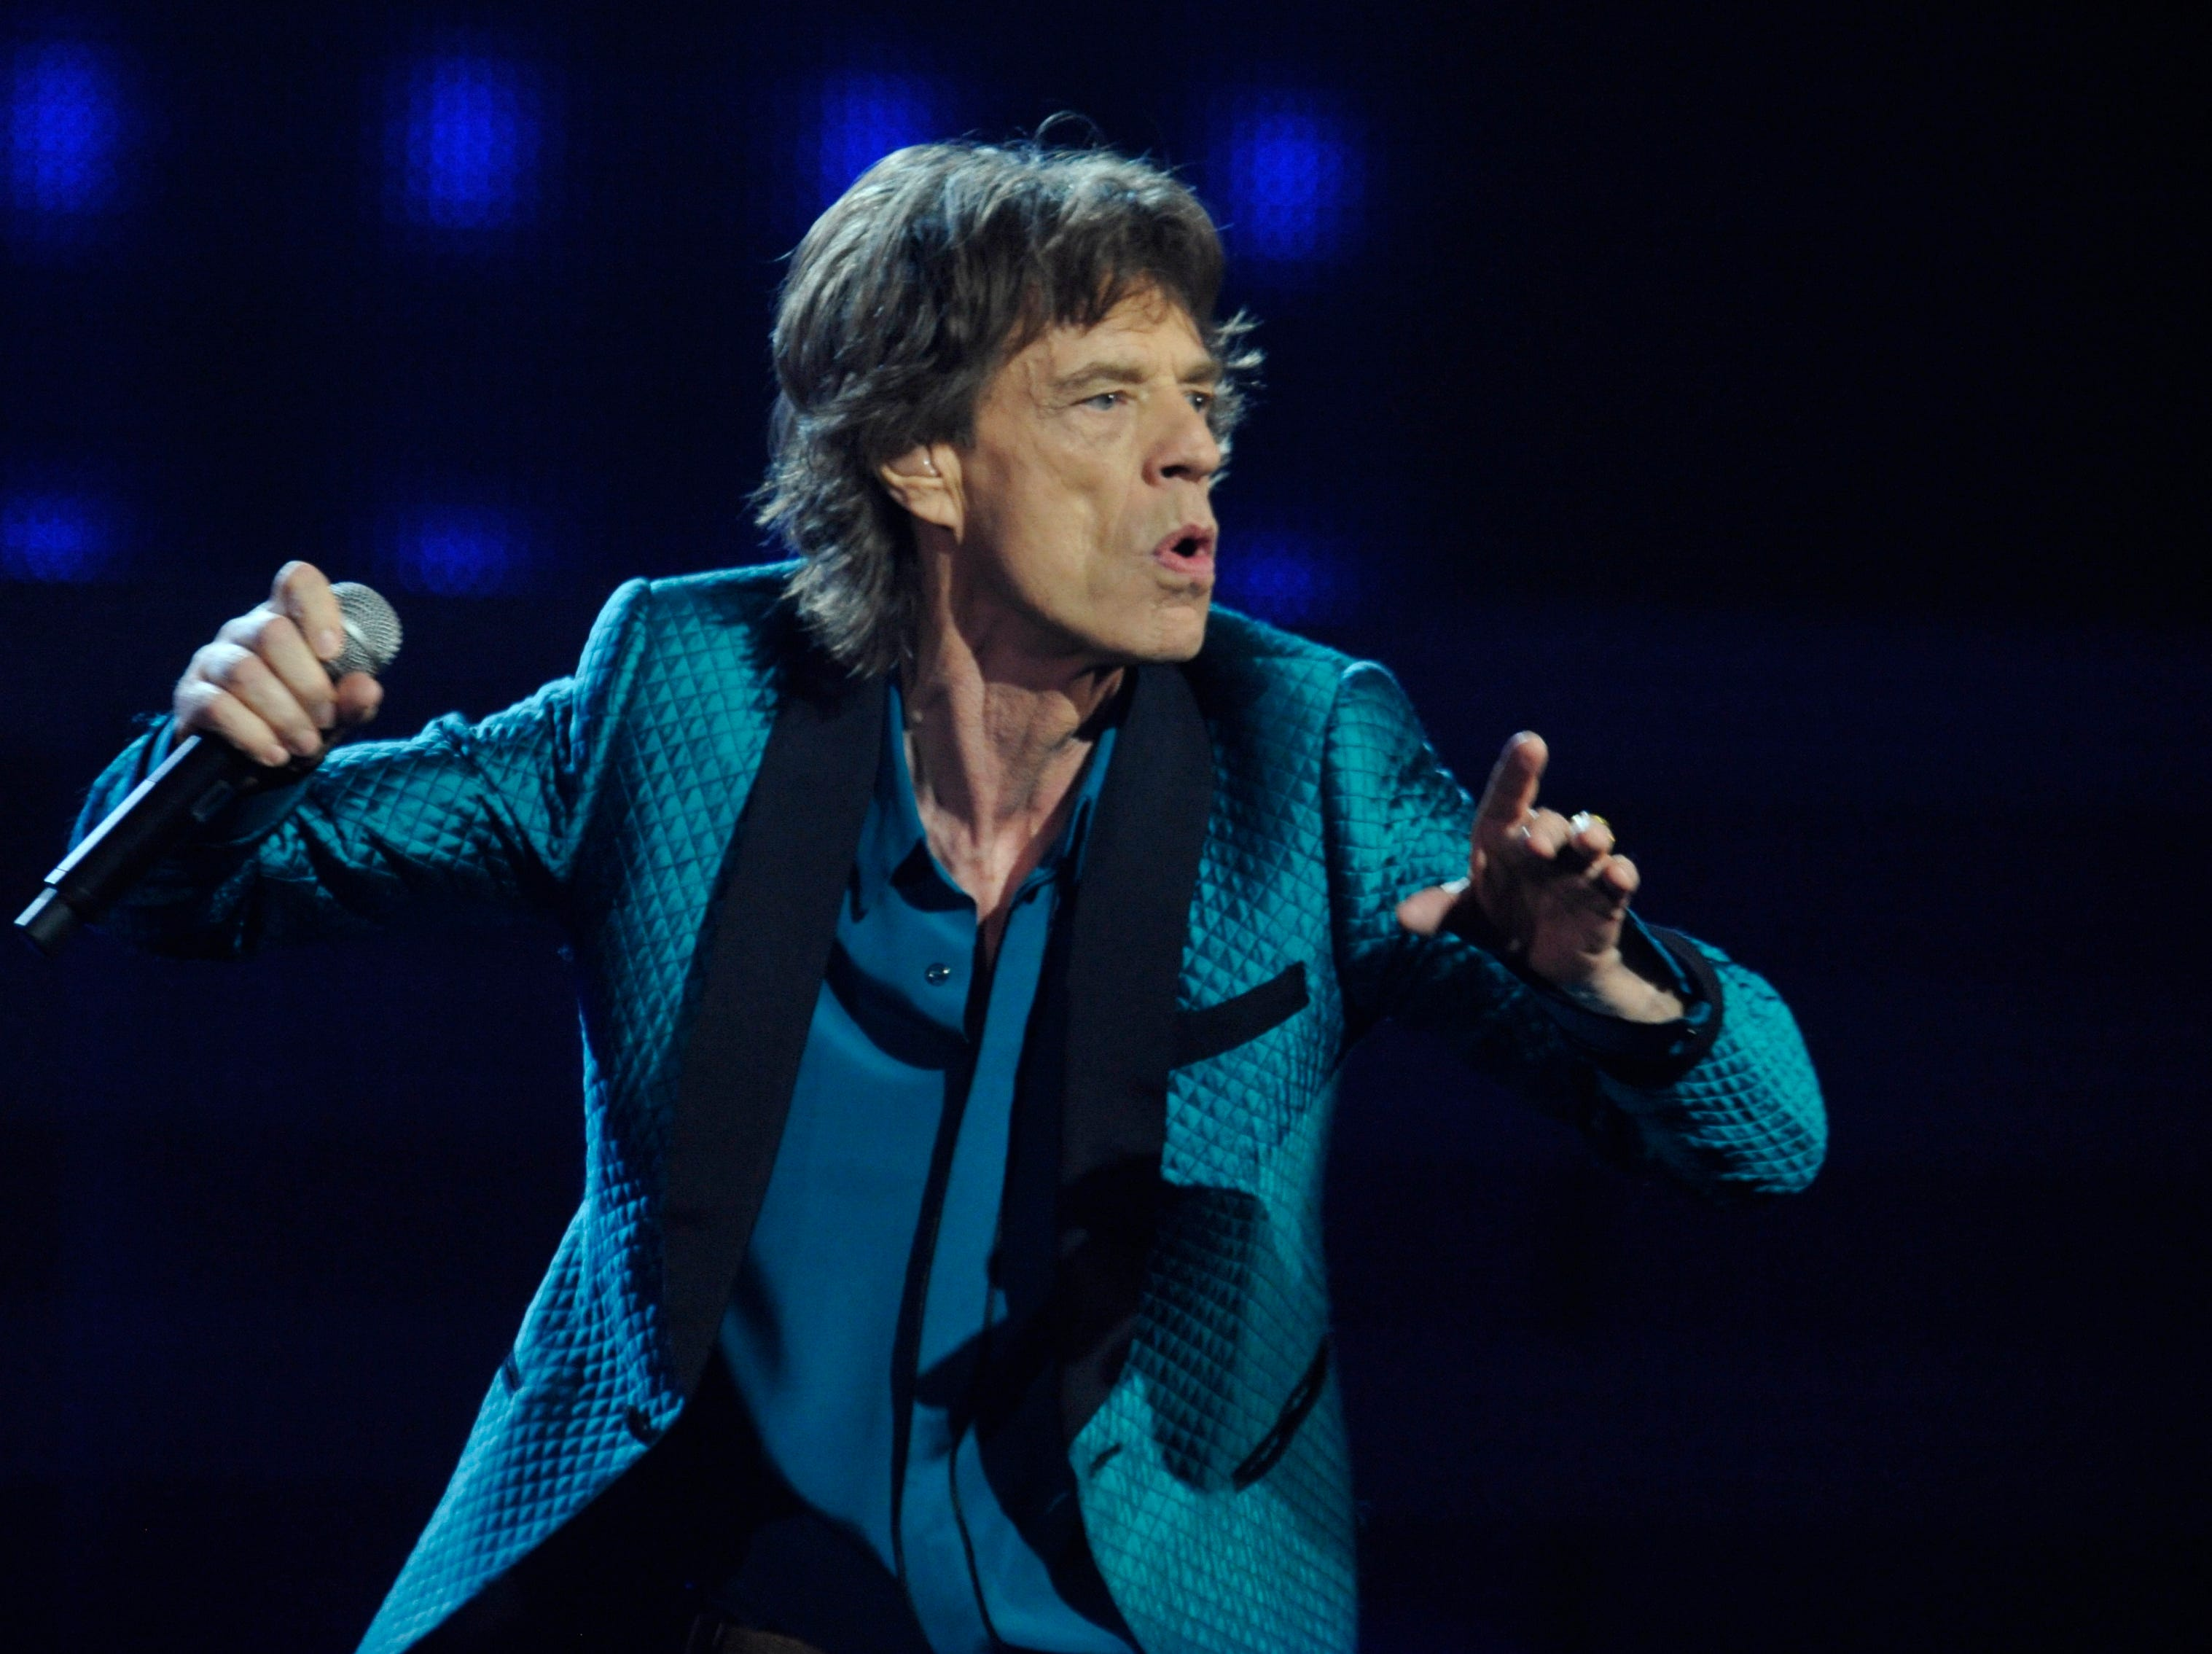 ORG XMIT: RH 39783 2011 GRAMMYS 2/11/2011  2/13/11 7:38:46 PM -- Los Angeles, CA, U.S.A  -- Mick Jagger performs at the 2011 Grammy Awards.--    Photo by Robert Hanashiro, USA TODAY Staff  (Via OlyDrop)